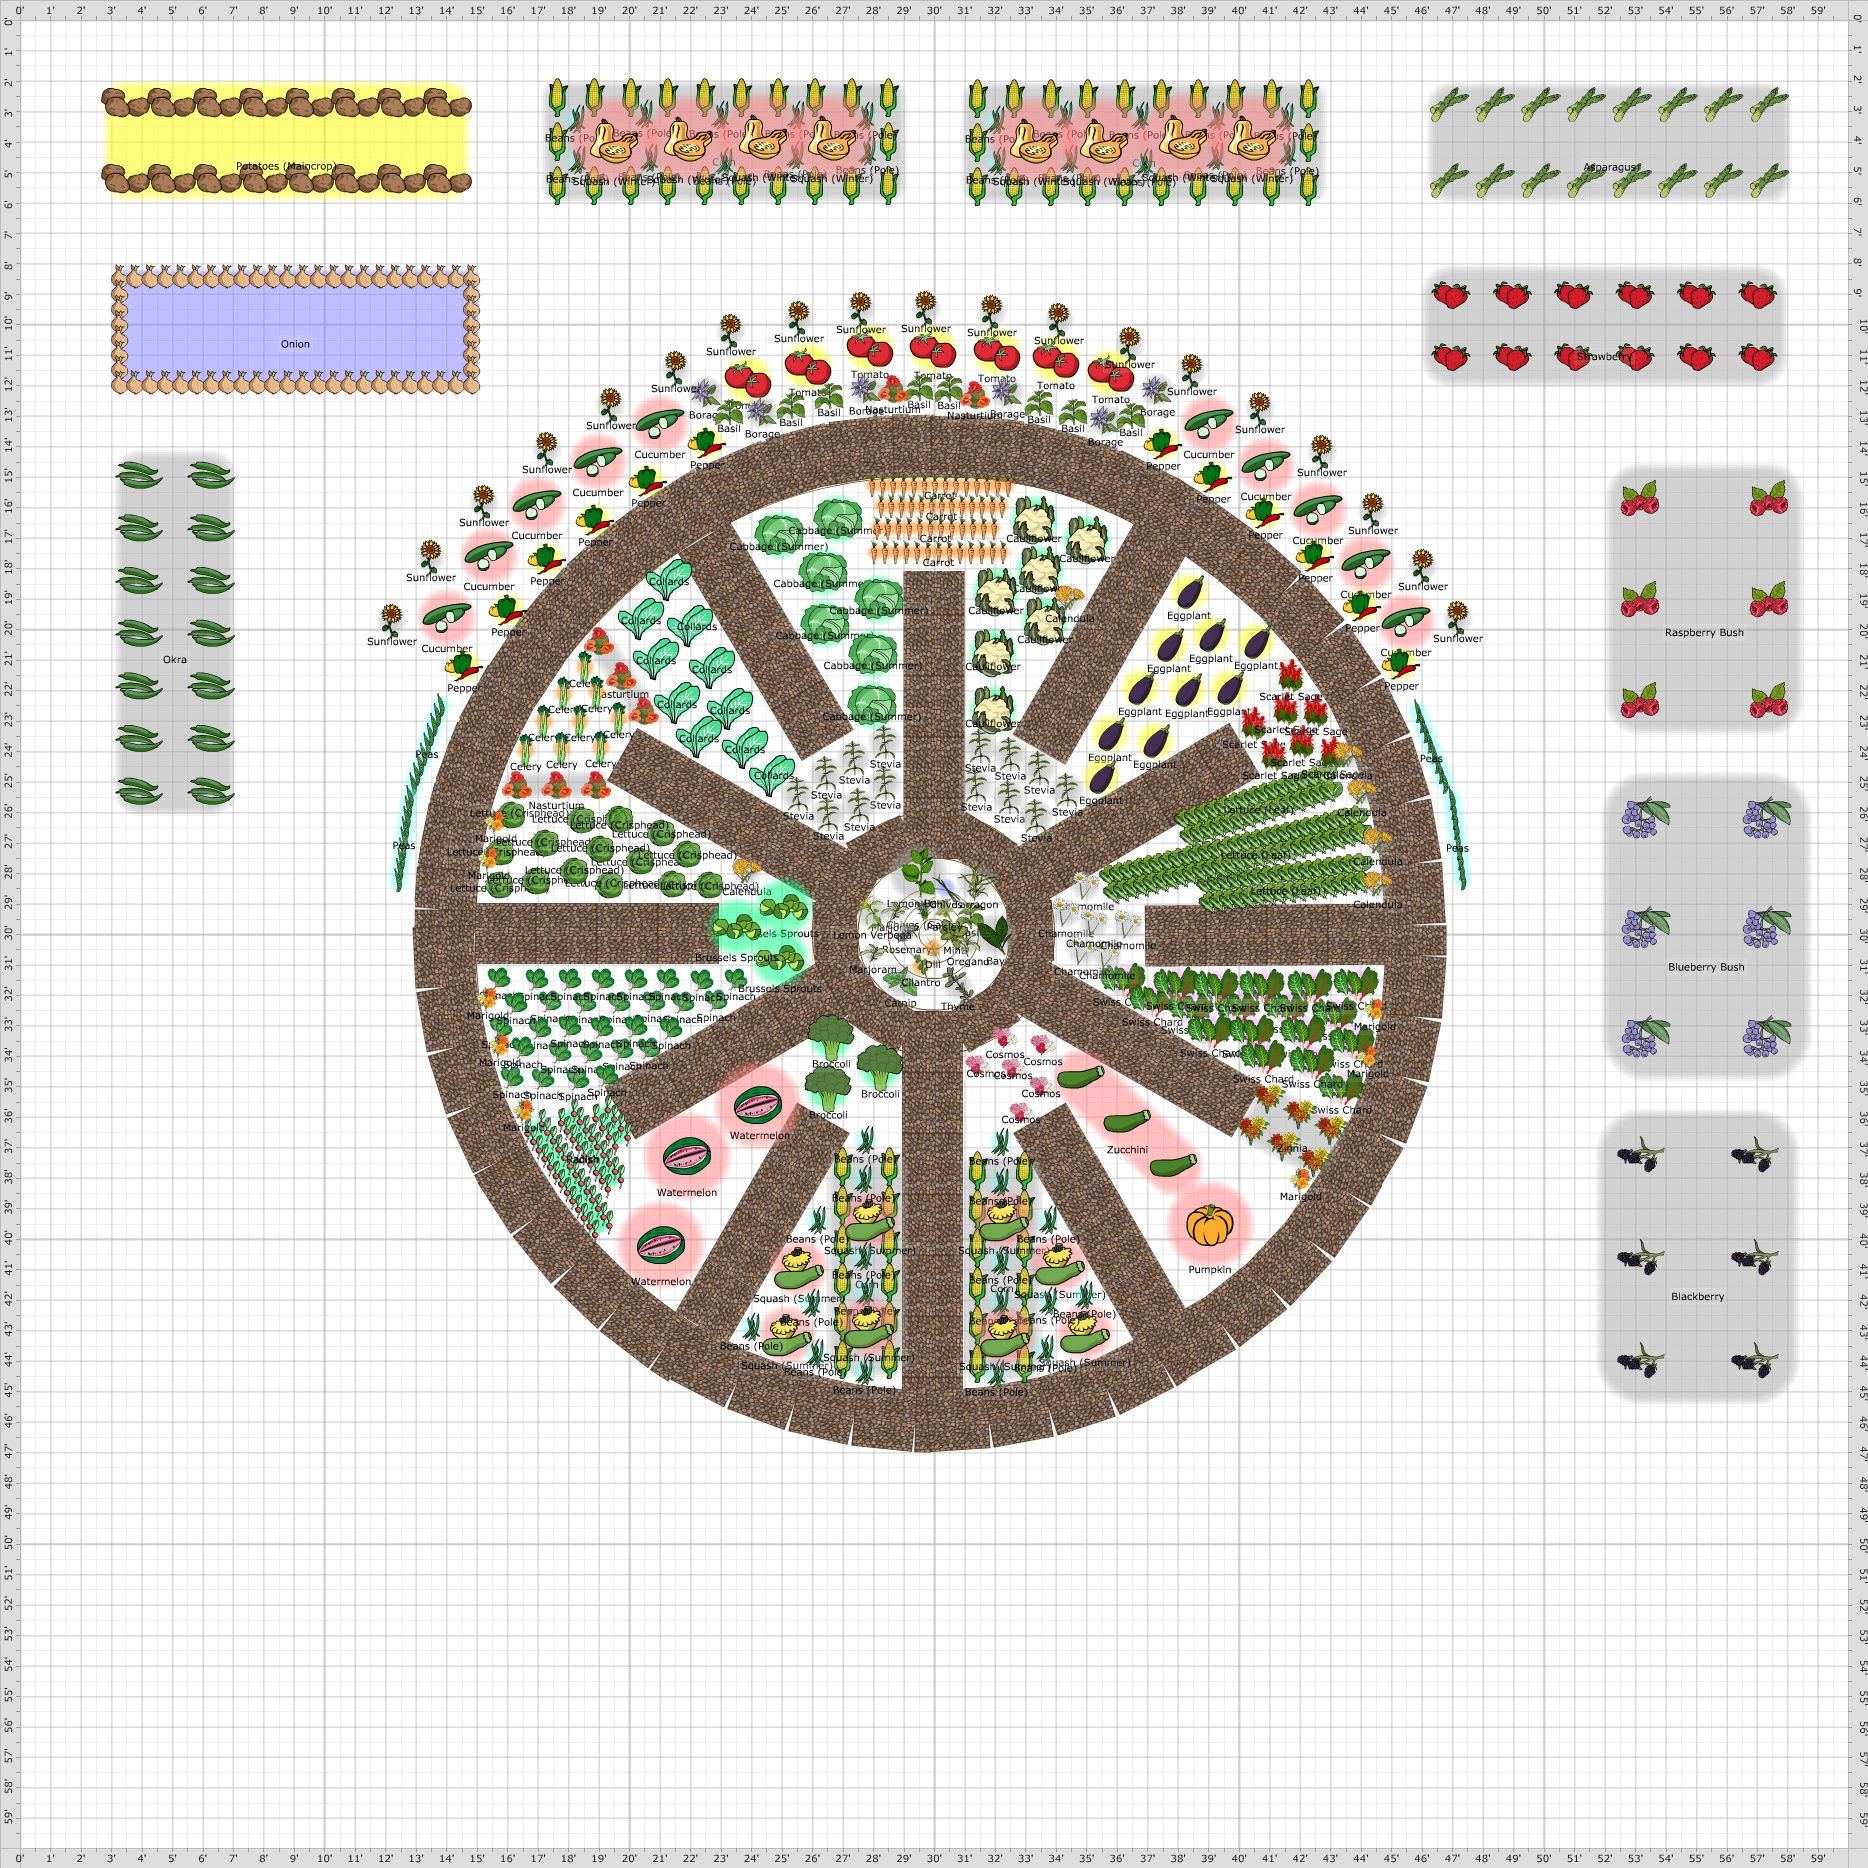 Garden Plan A Thirty Foot Mandala Centered Around Five Herb Spiral And Surrounded By 4 X12 Raised Beds